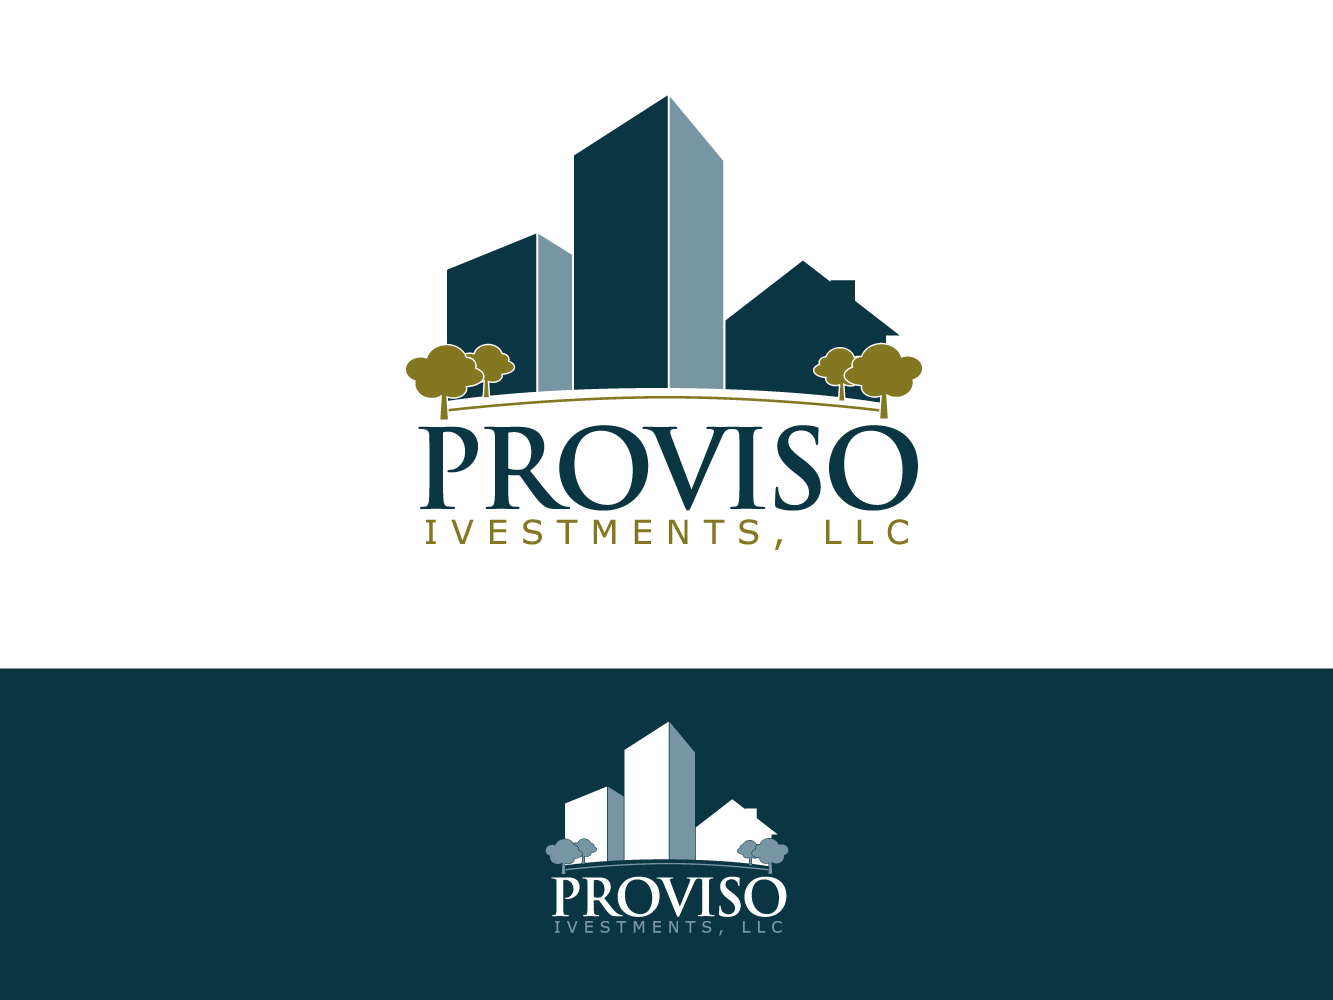 Logo Design by umxca - Entry No. 52 in the Logo Design Contest New Logo Design for PROVISO INVESTMENTS,LLC.